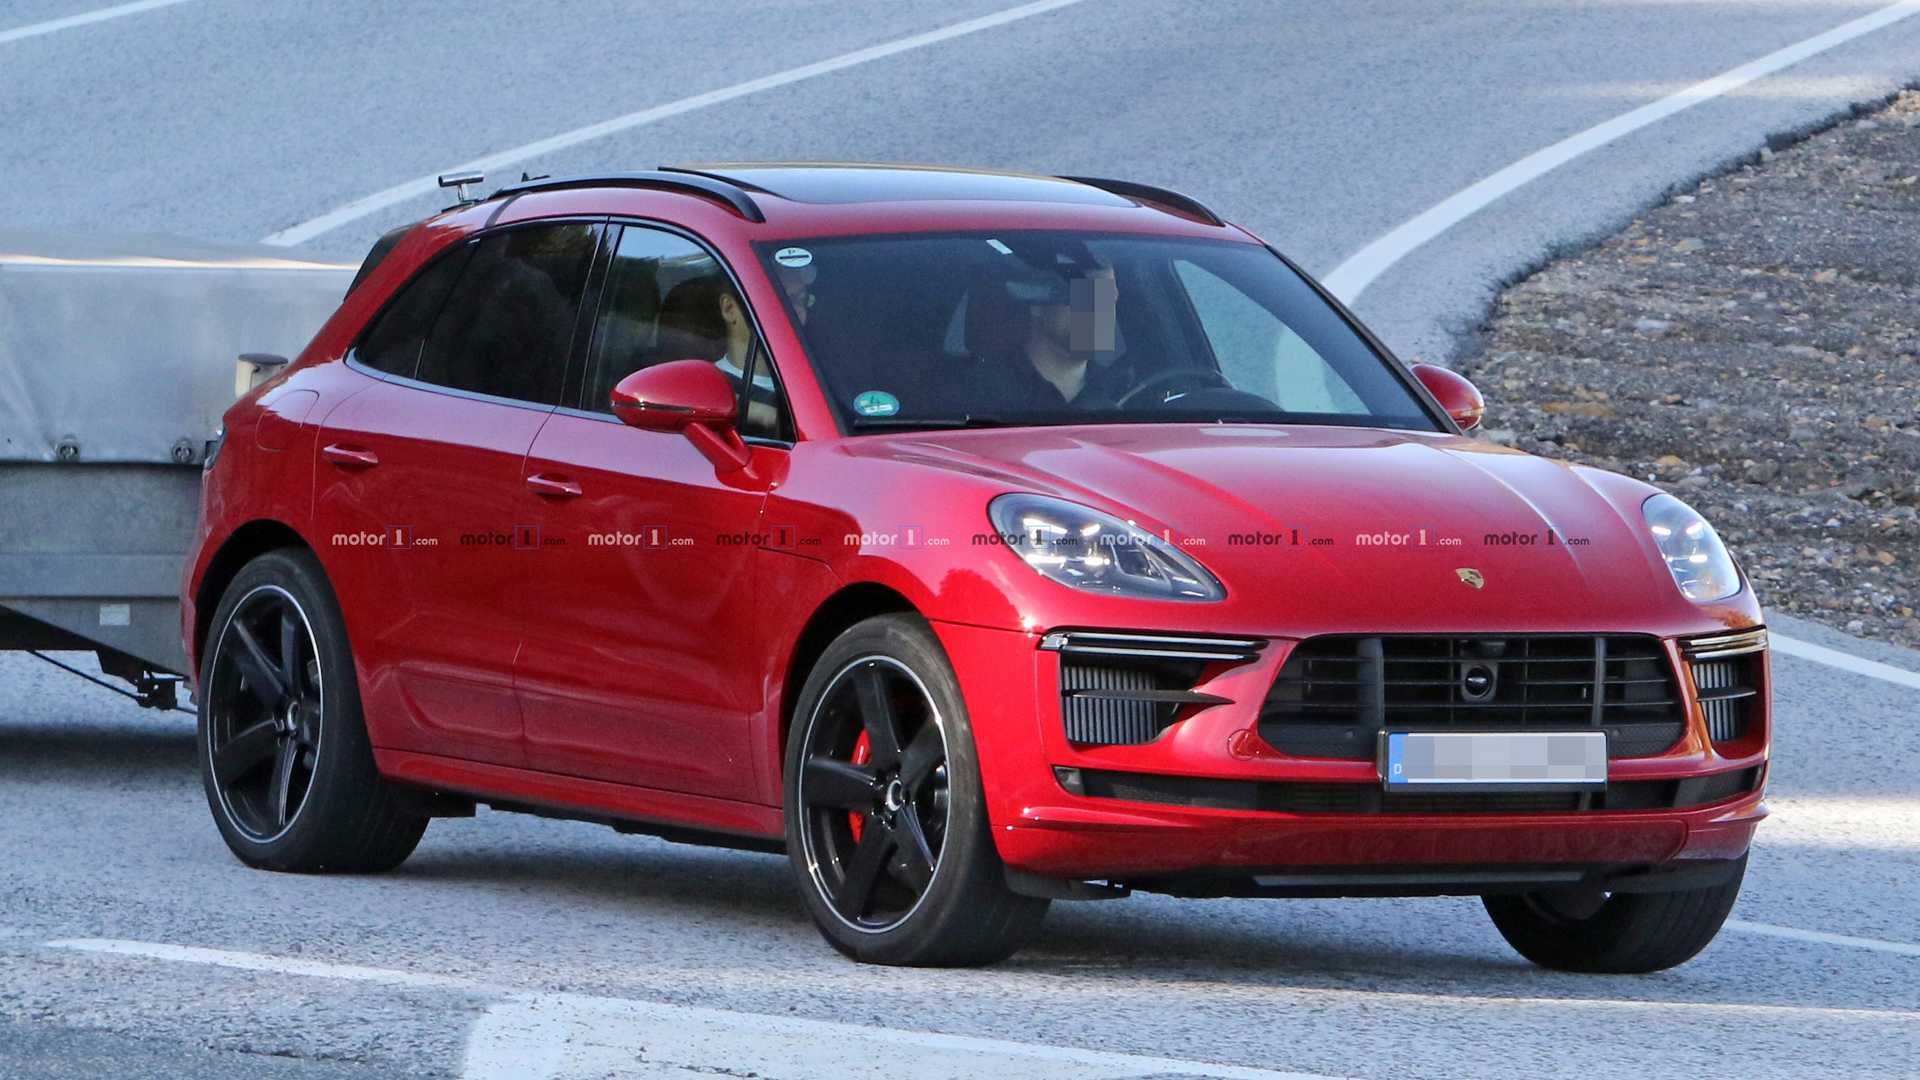 Porsche Macan Turbo Spied Doing A Little Towing Before Its